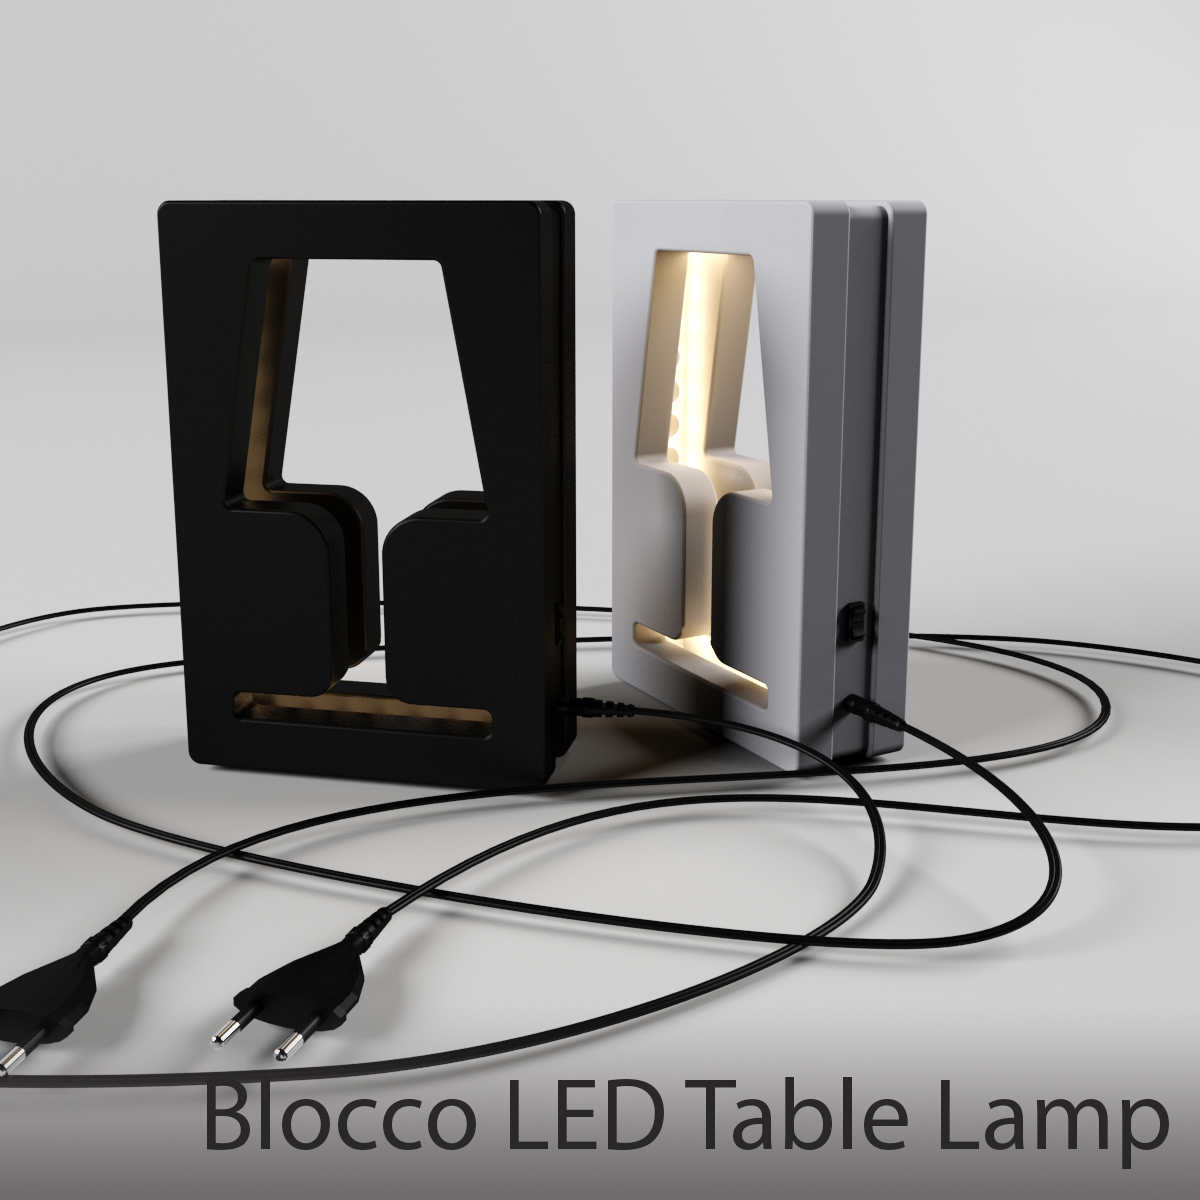 Blocco Led Table Lamp White And Black Modern Table Lamp 3d Model Max Fbx 1